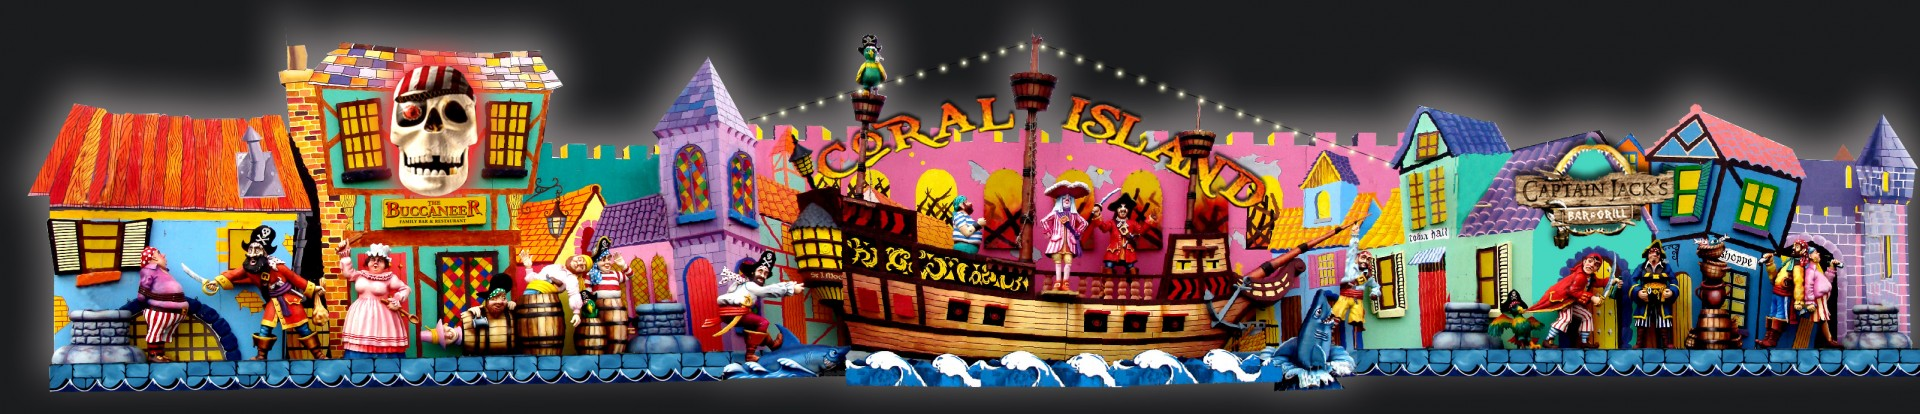 Coral Island tableaux visualisation